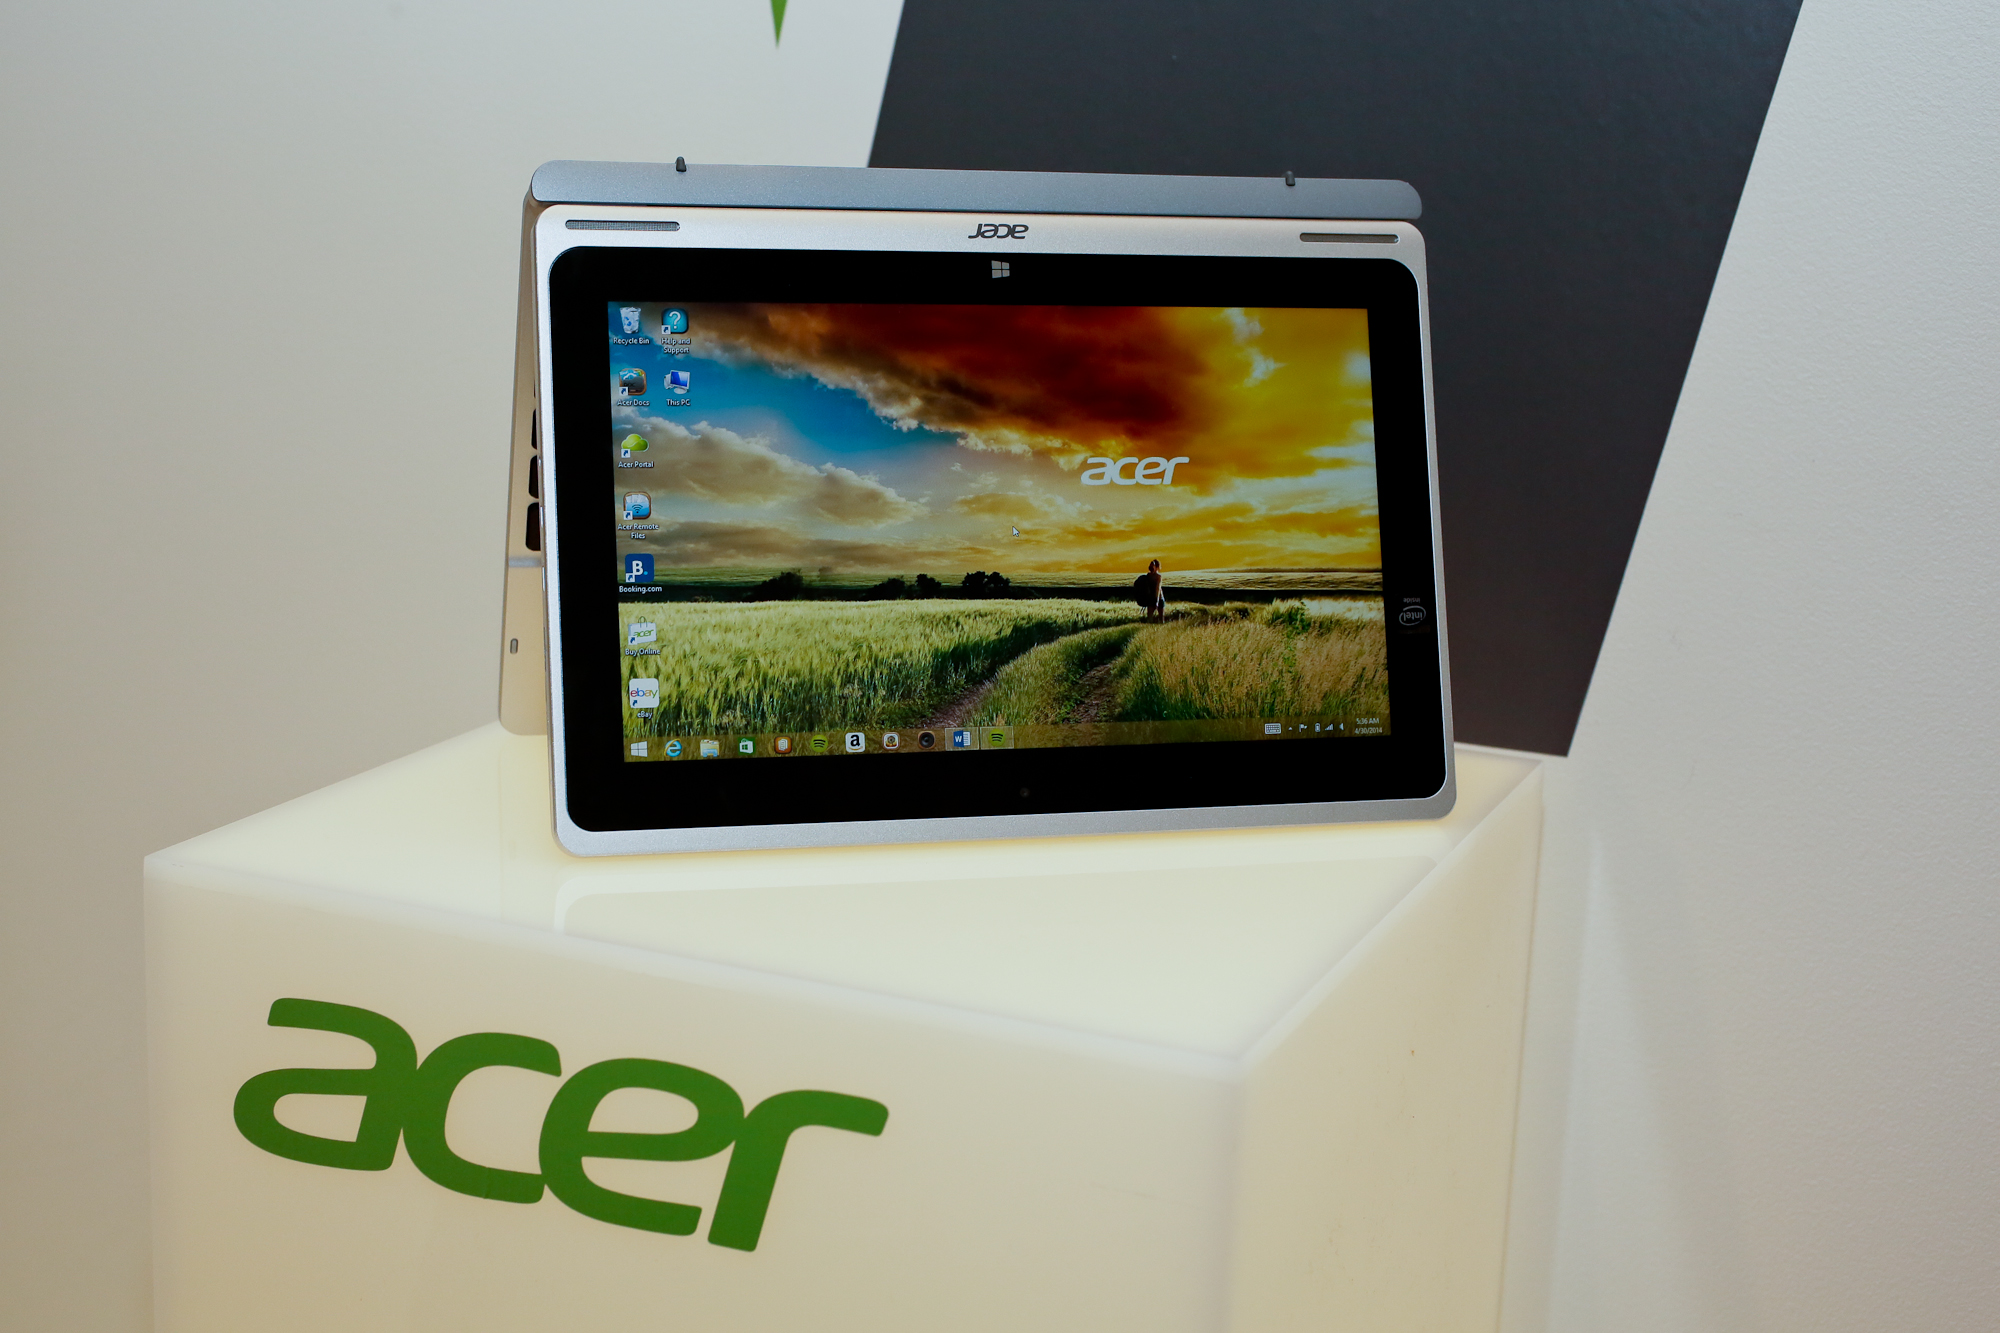 005acer-aspire-switch-10-product-photos.jpg